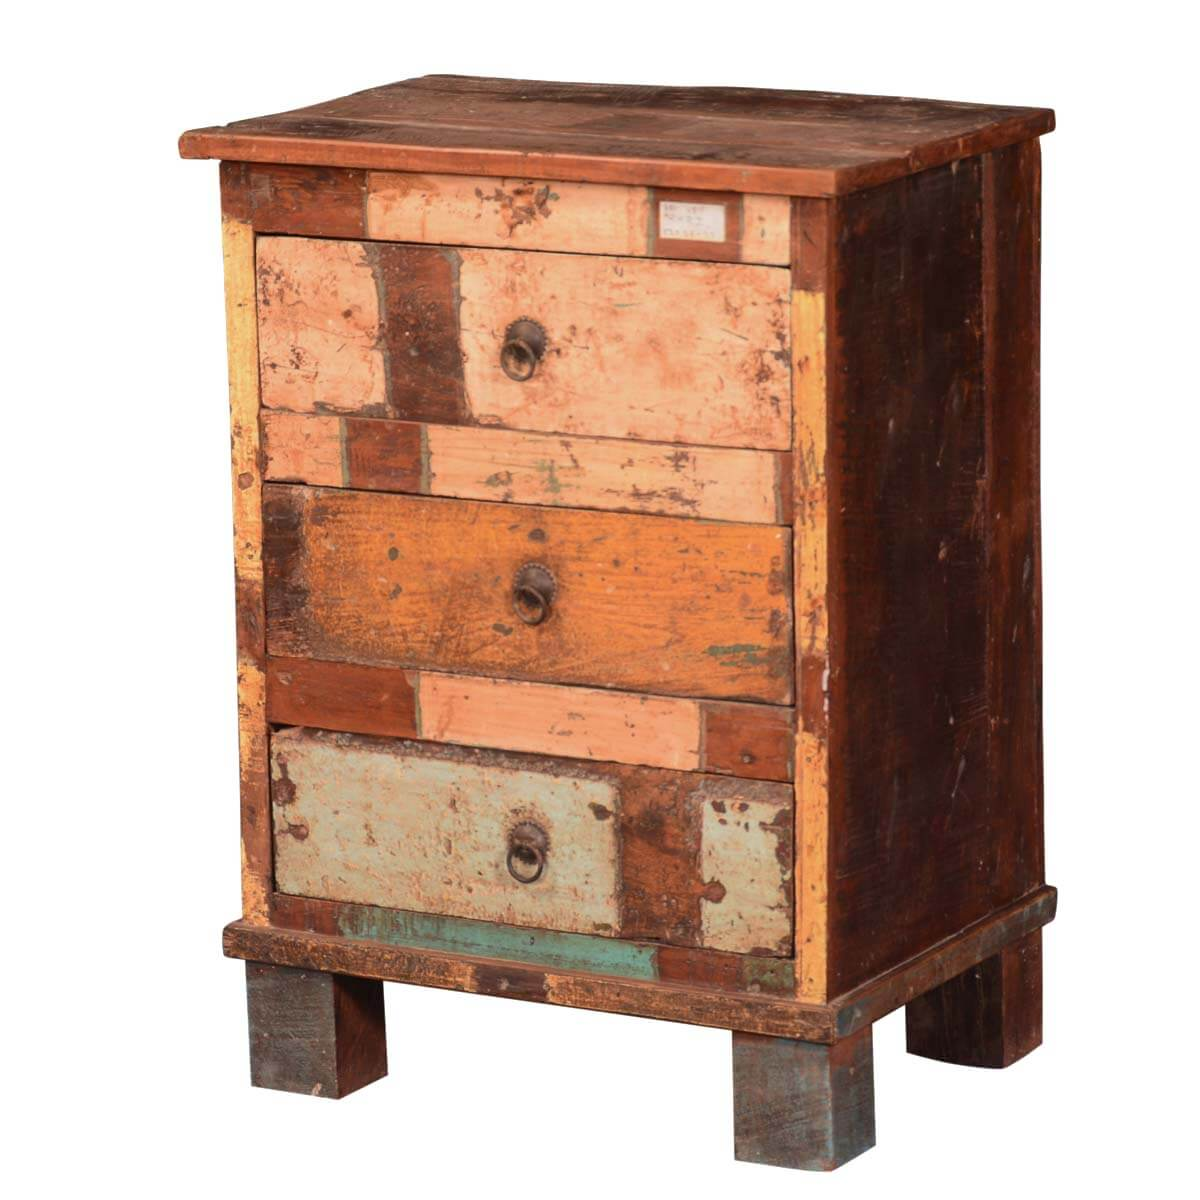 Rustic patches reclaimed wood nightstand mini chest end table for Rustic wood nightstand